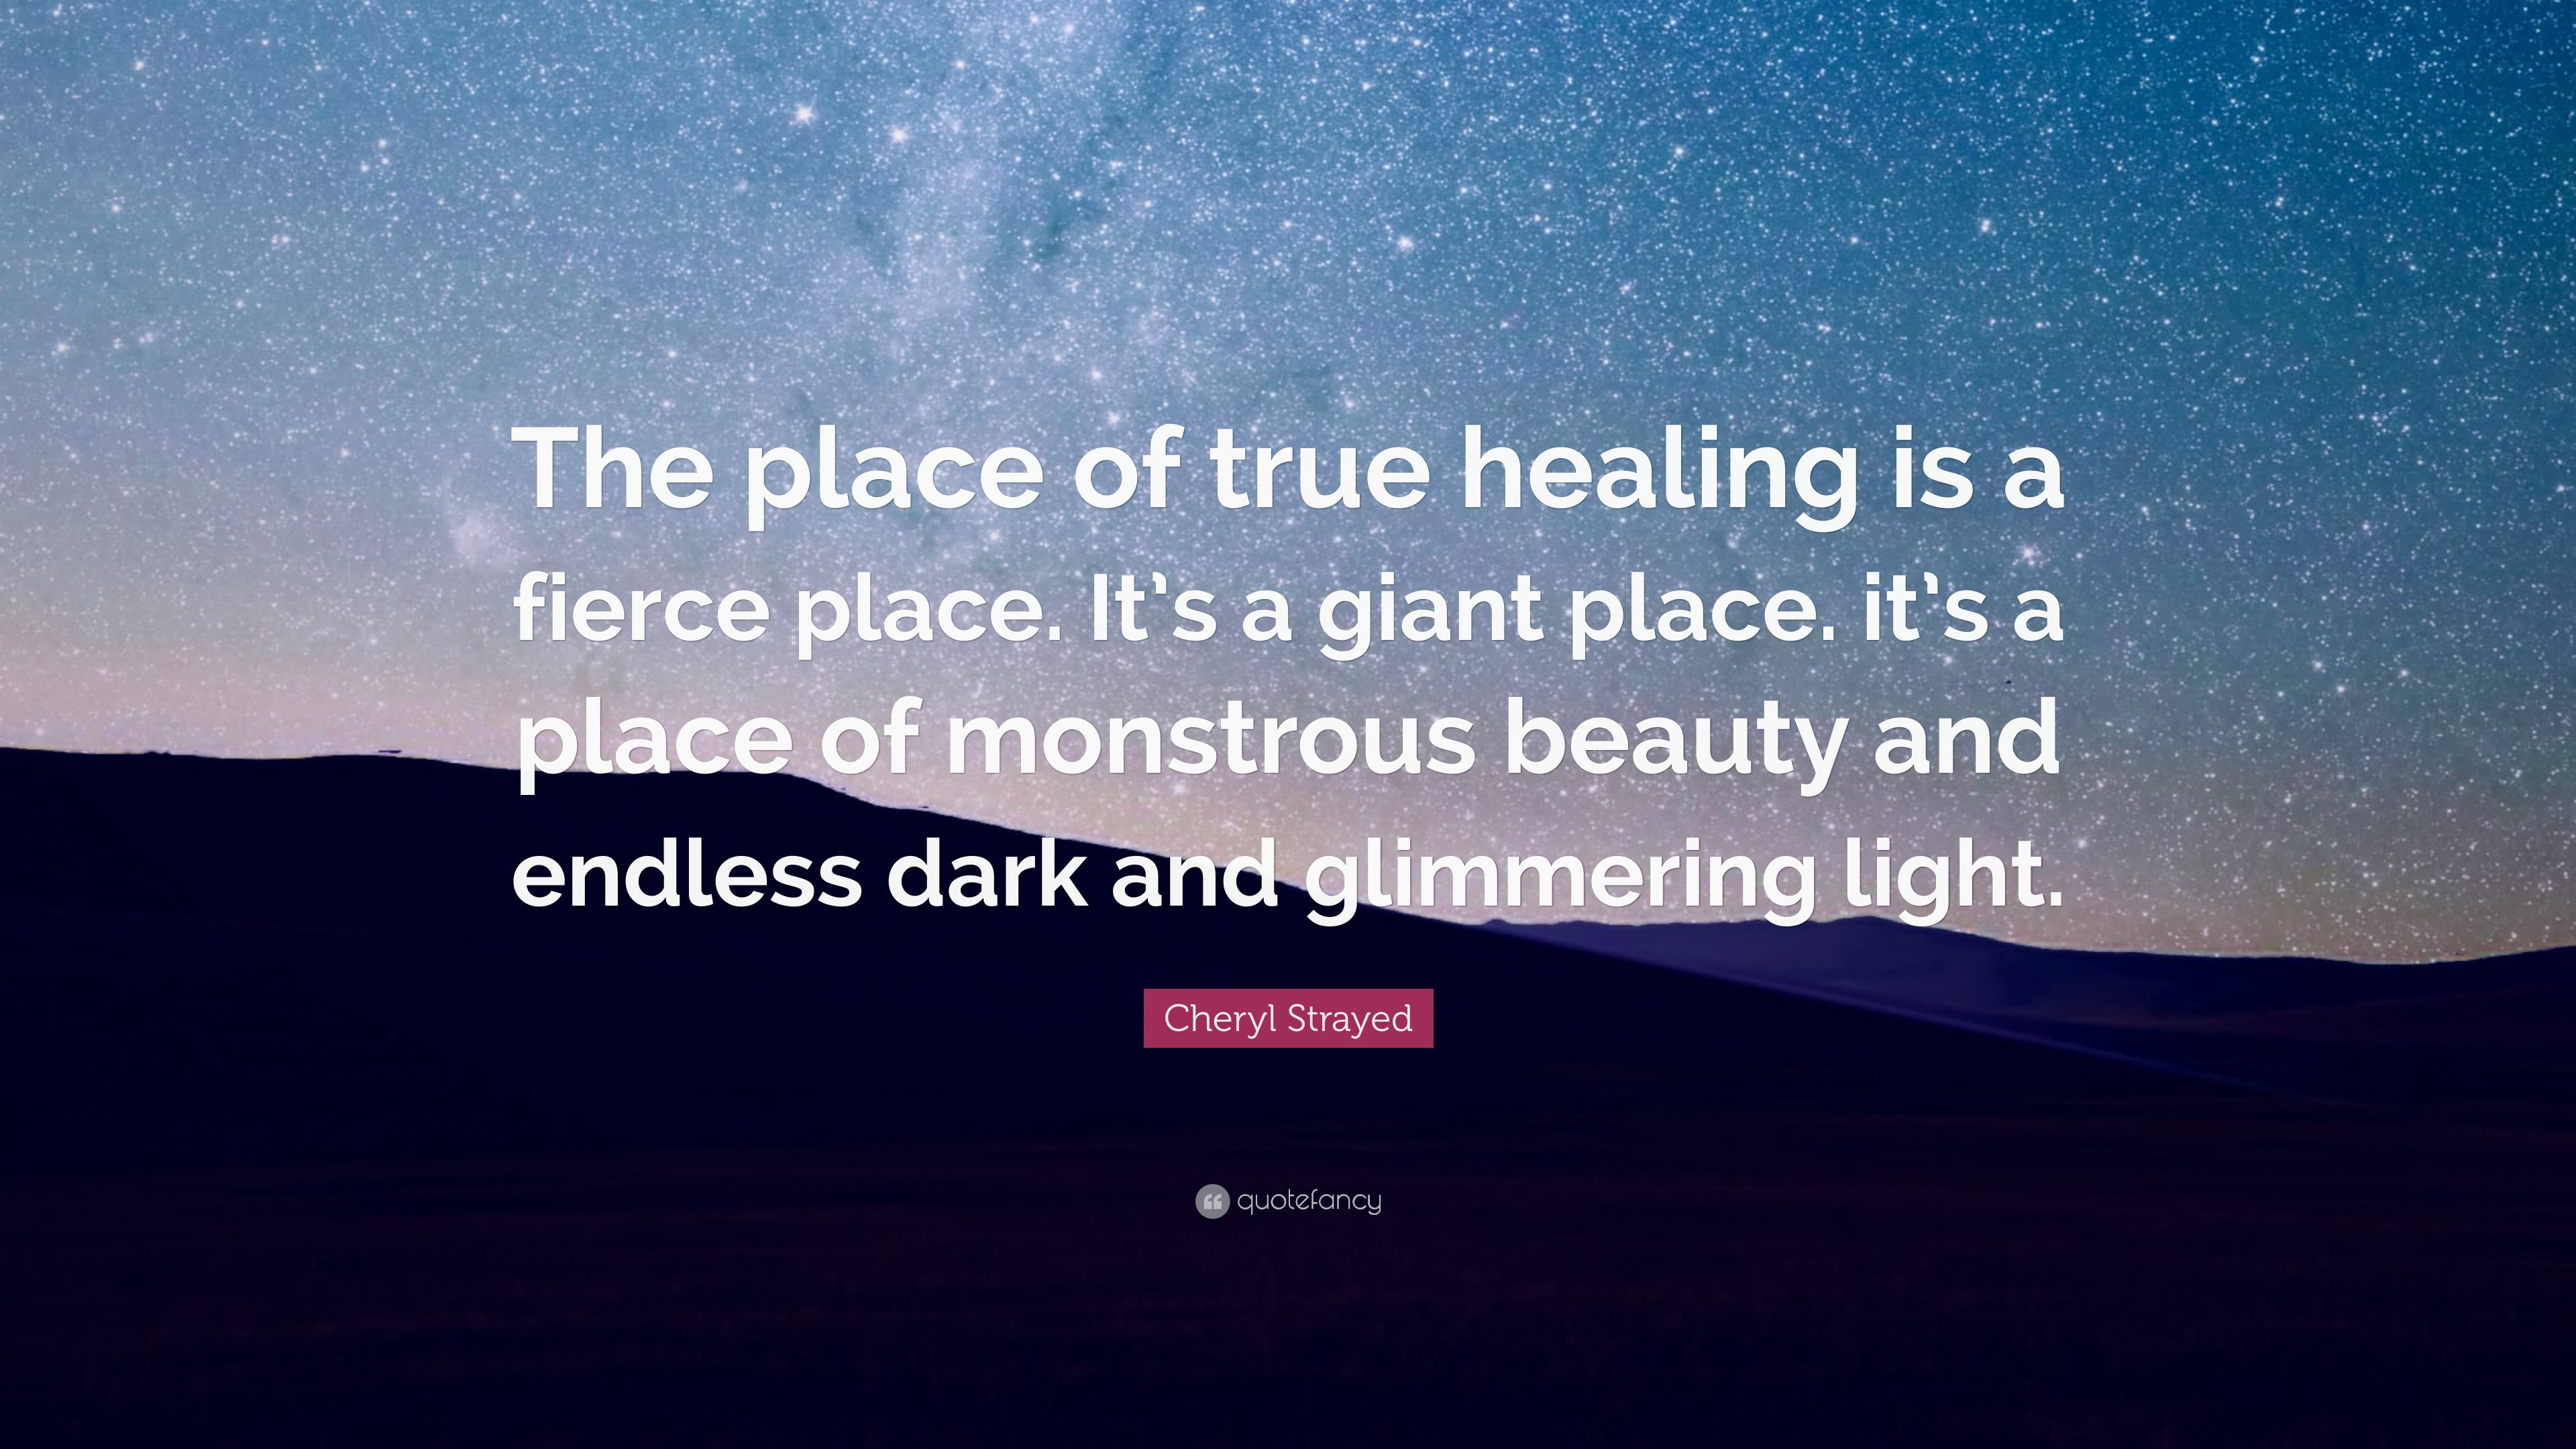 Healing Quotes (40 wallpapers) - Quotefancy